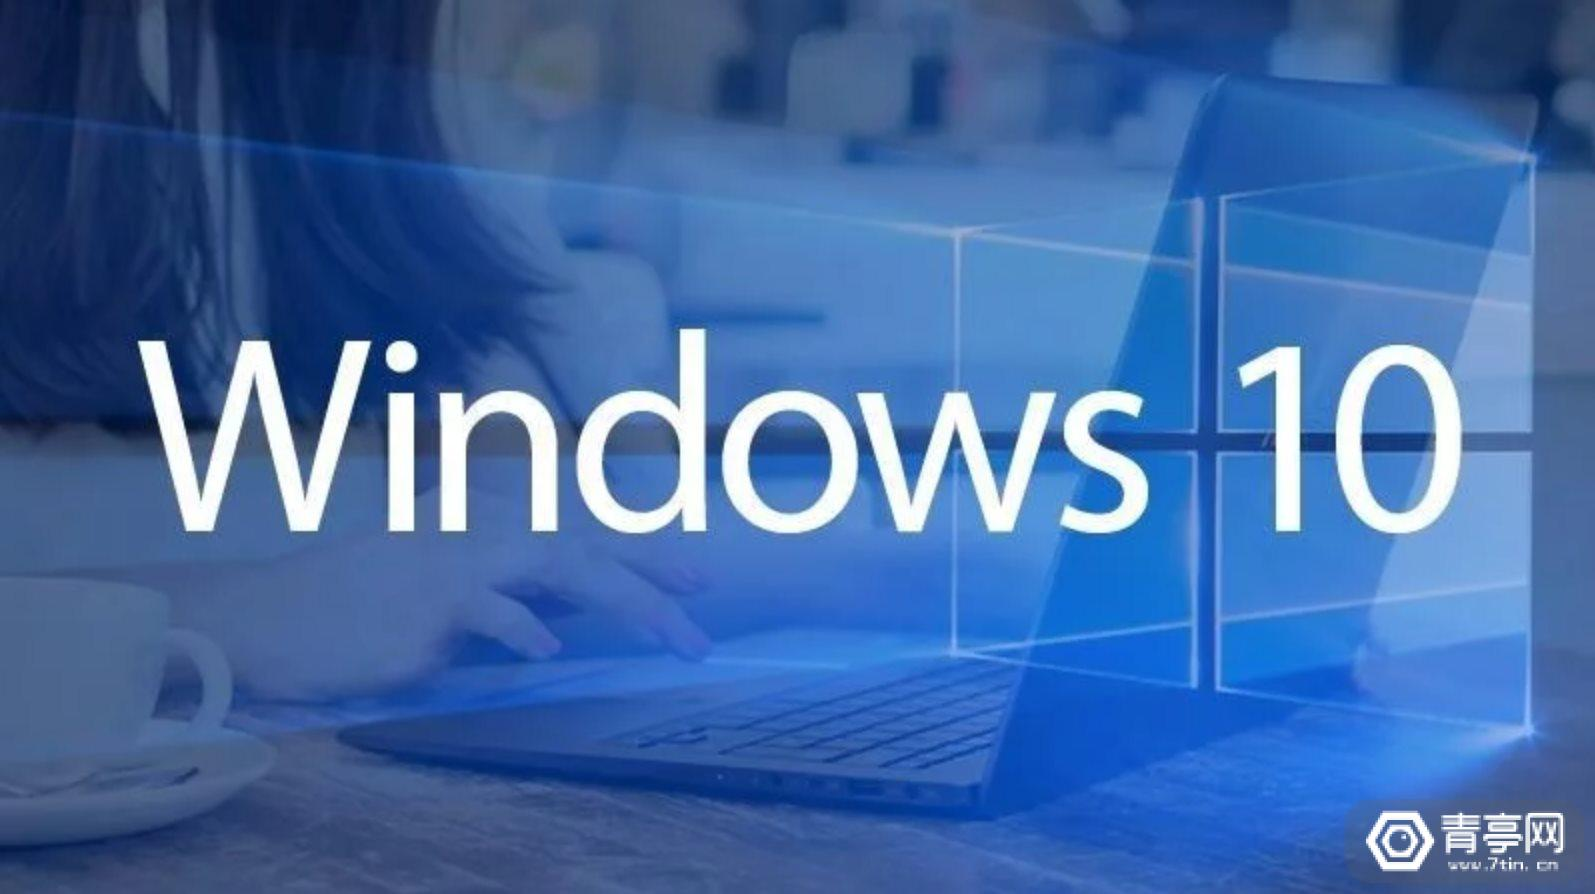 Windows 10 preview更新,Mixed Reality将支持Win32程序